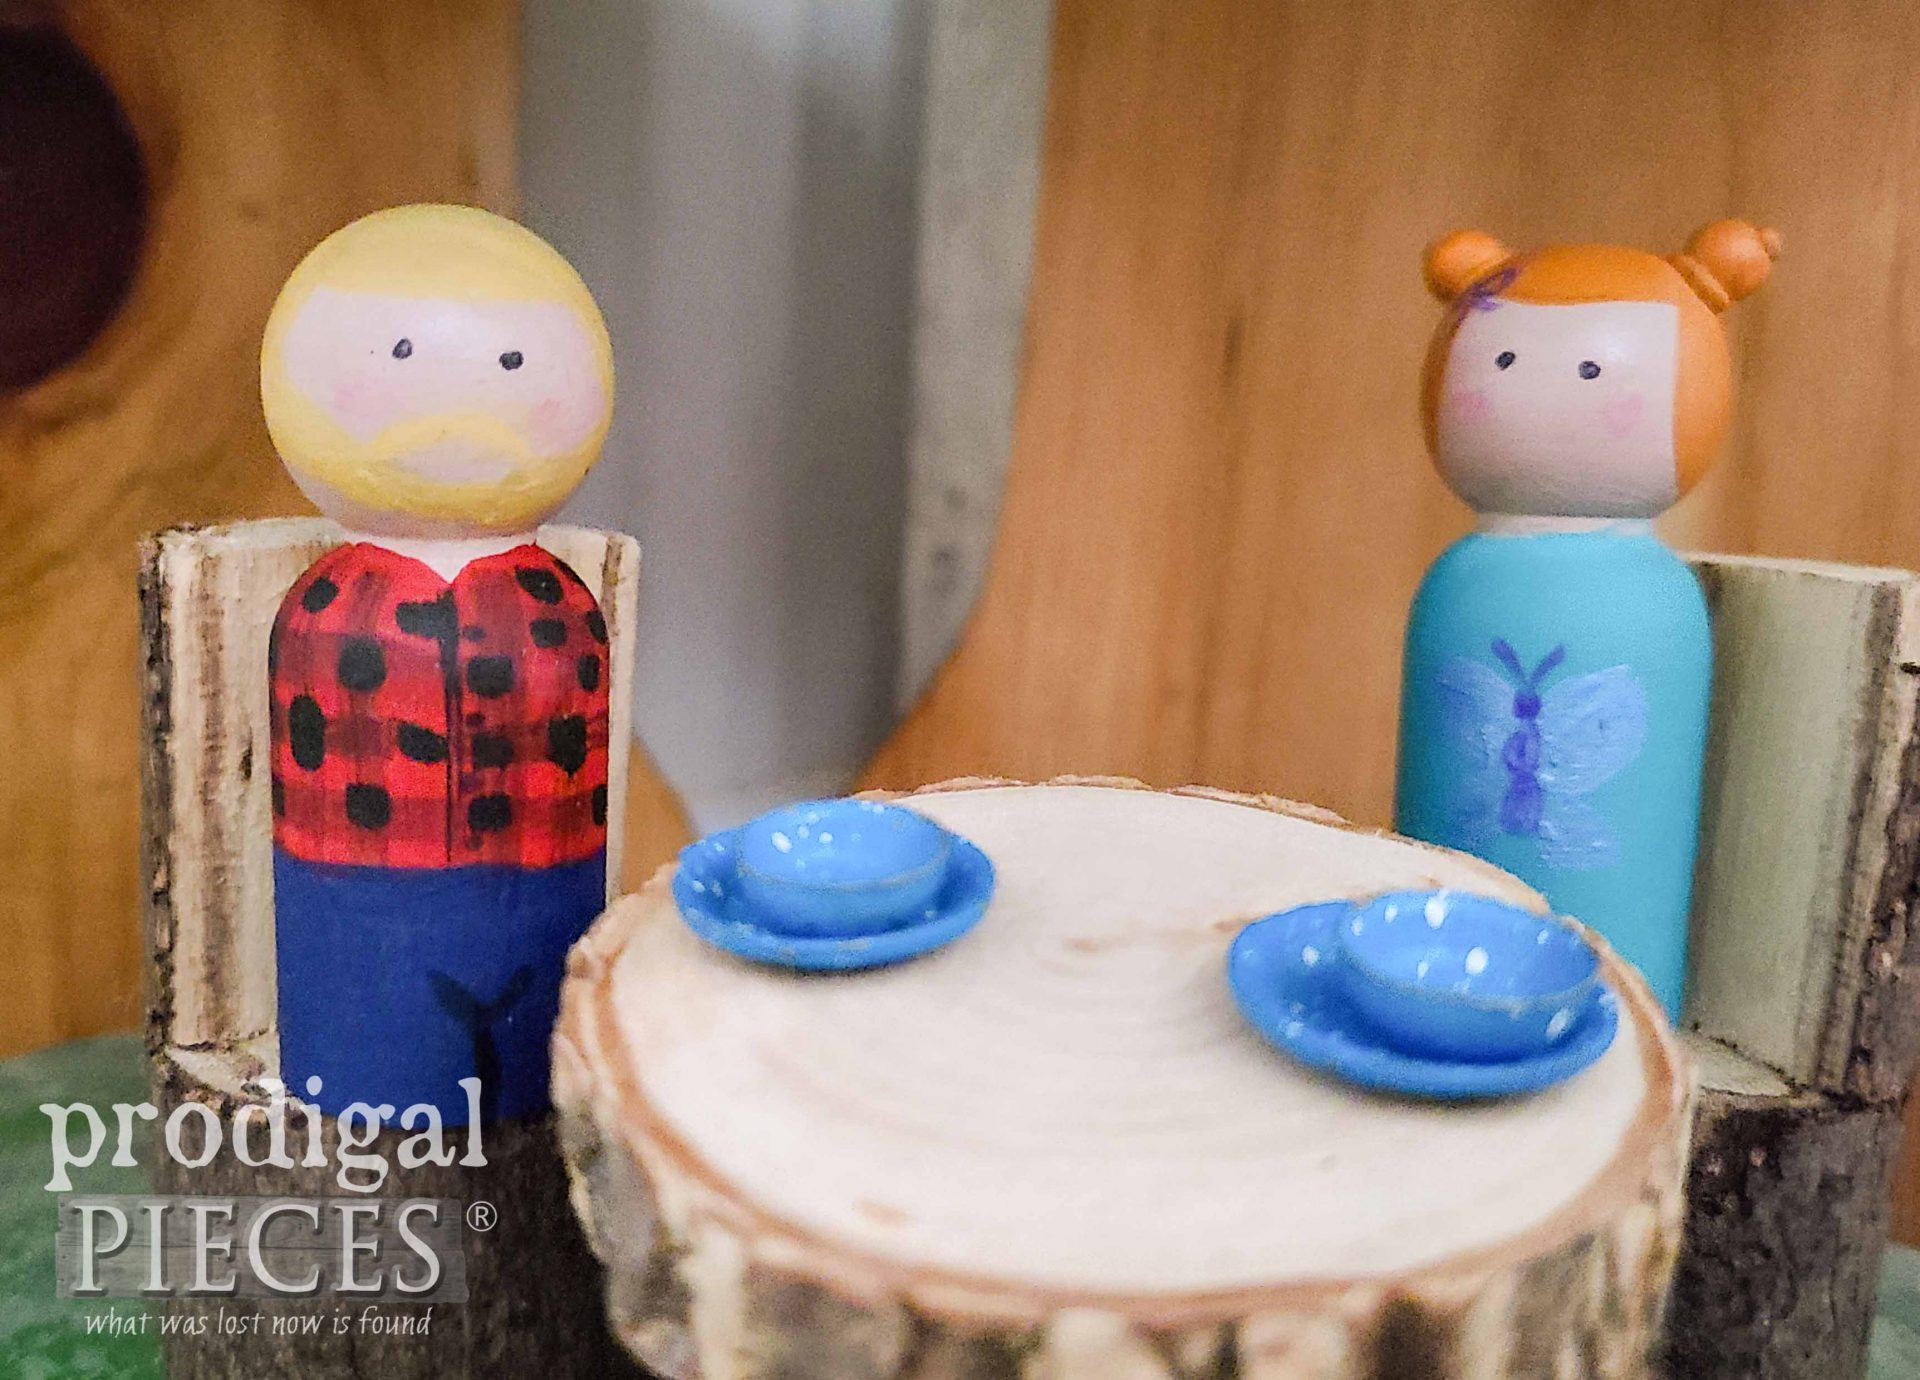 Whimsical Peg People at Dining Table by Larissa of Prodigal Pieces | prodigalpieces.com #prodigalpieces #toys #upcycled #kids